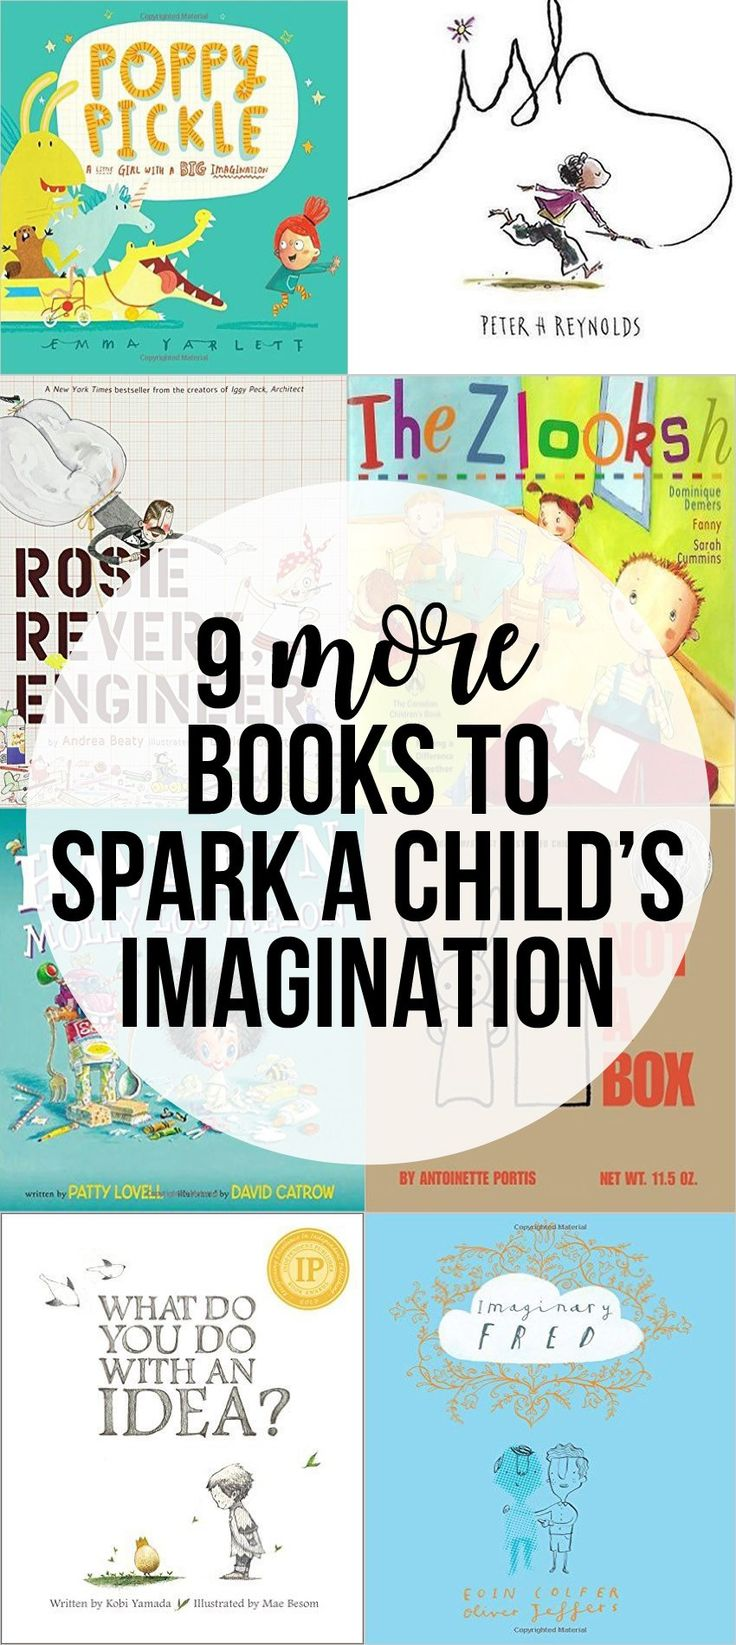 Nine More Books With Great Imagination To Spark Your Child's Imagination